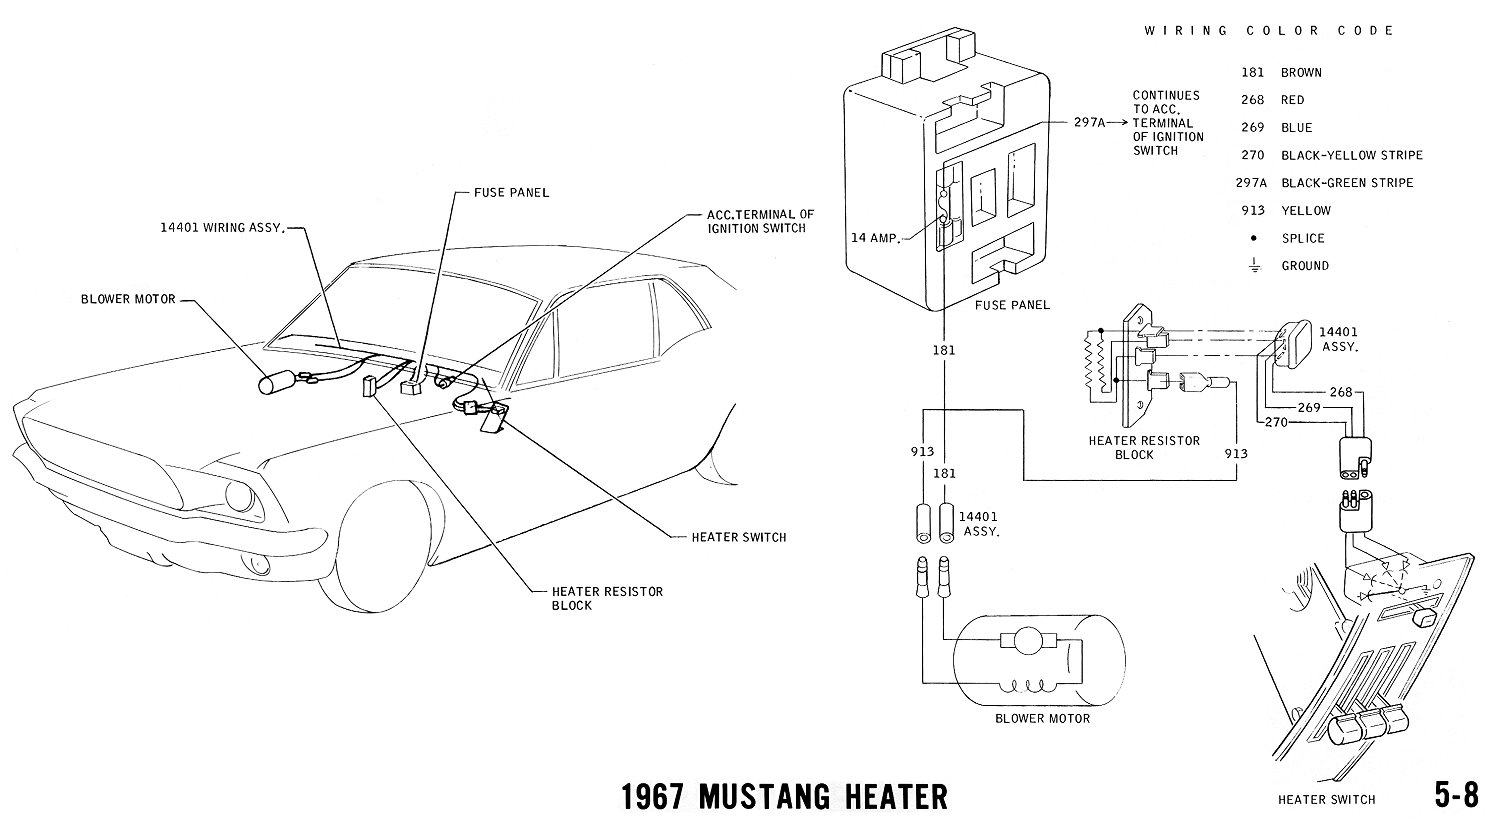 Mustang Heater Wiring Diagram Free Printable Wiring Diagrams Database